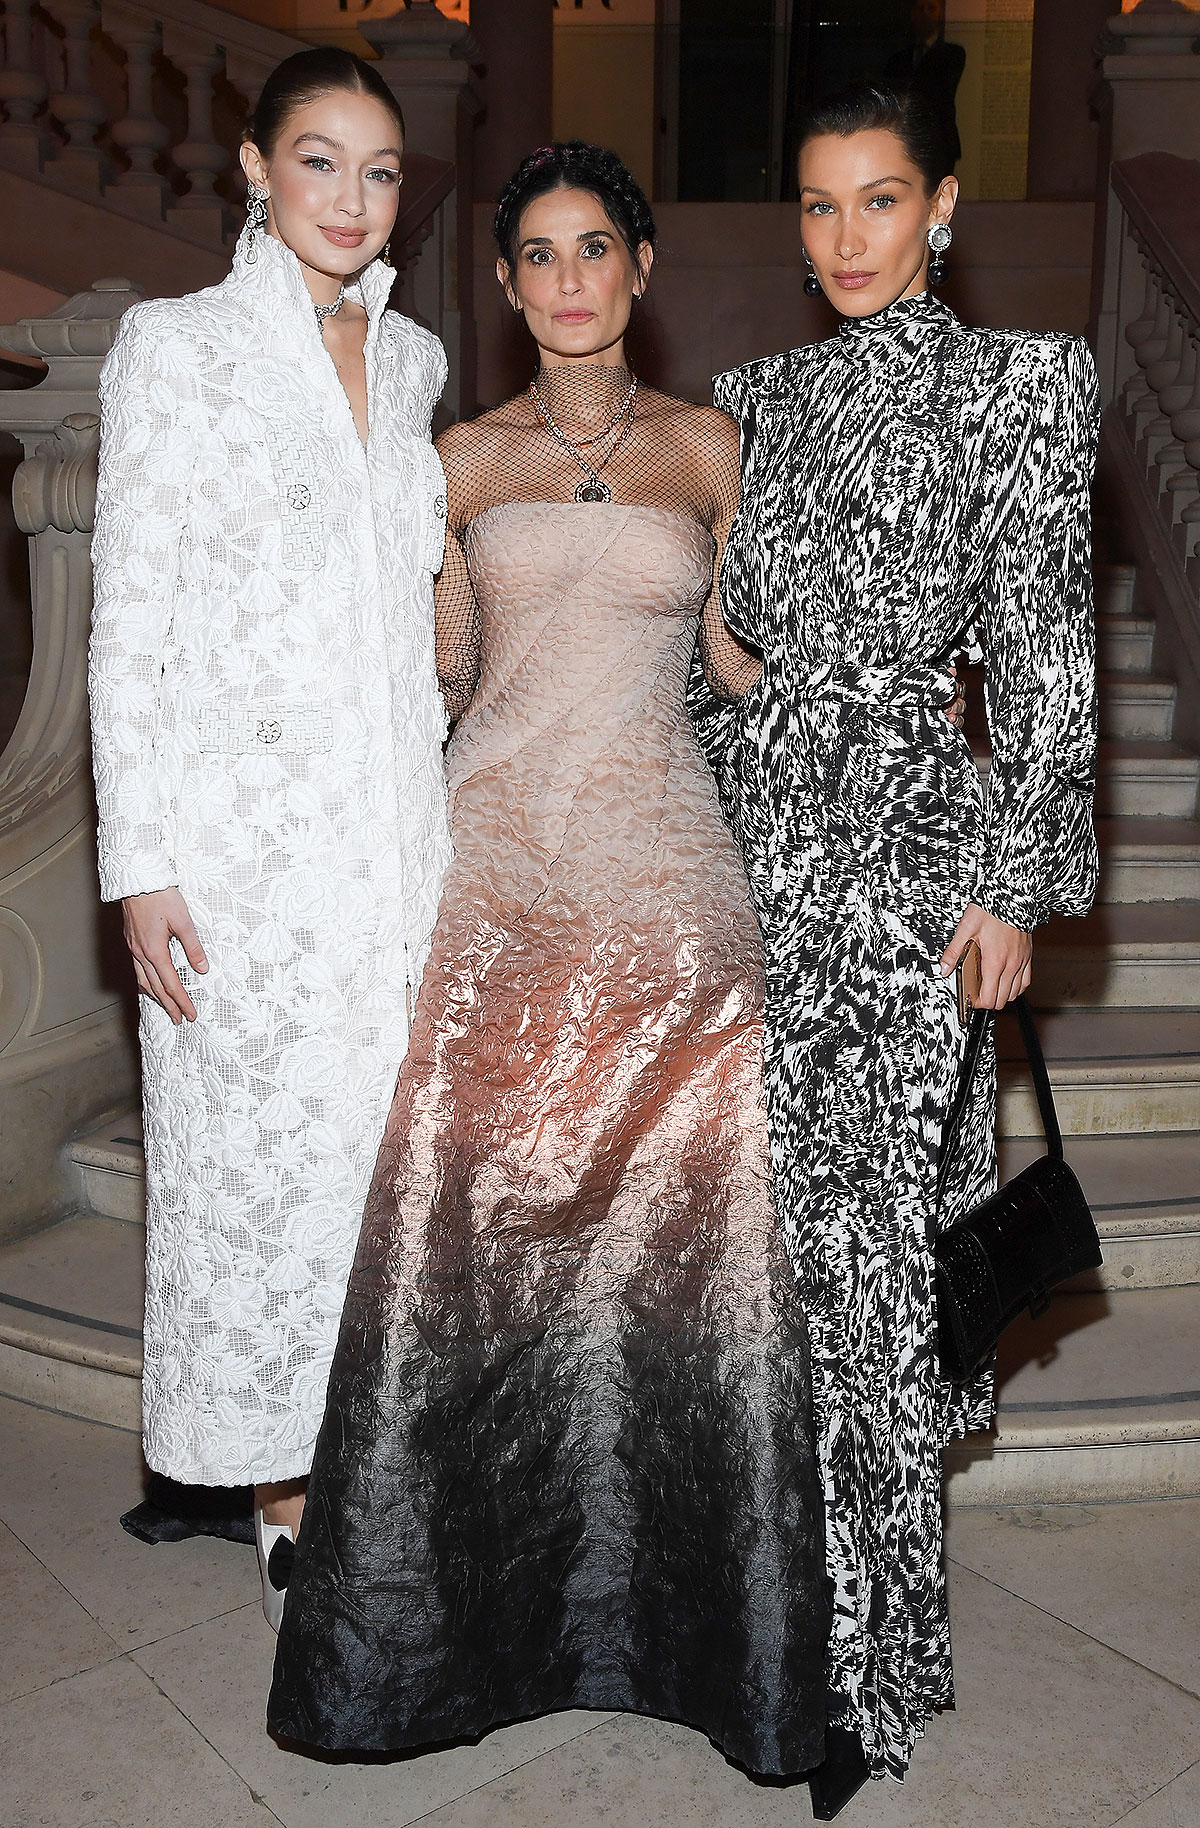 Gigi Hadid, Demi Moore and Bella Hadid attend the Harper's Bazaar Exhibition as part of the Paris Fashion Week Womenswear Fall/Winter 2020/2021 At Musee Des Arts Decoratifs on February 26, 2020